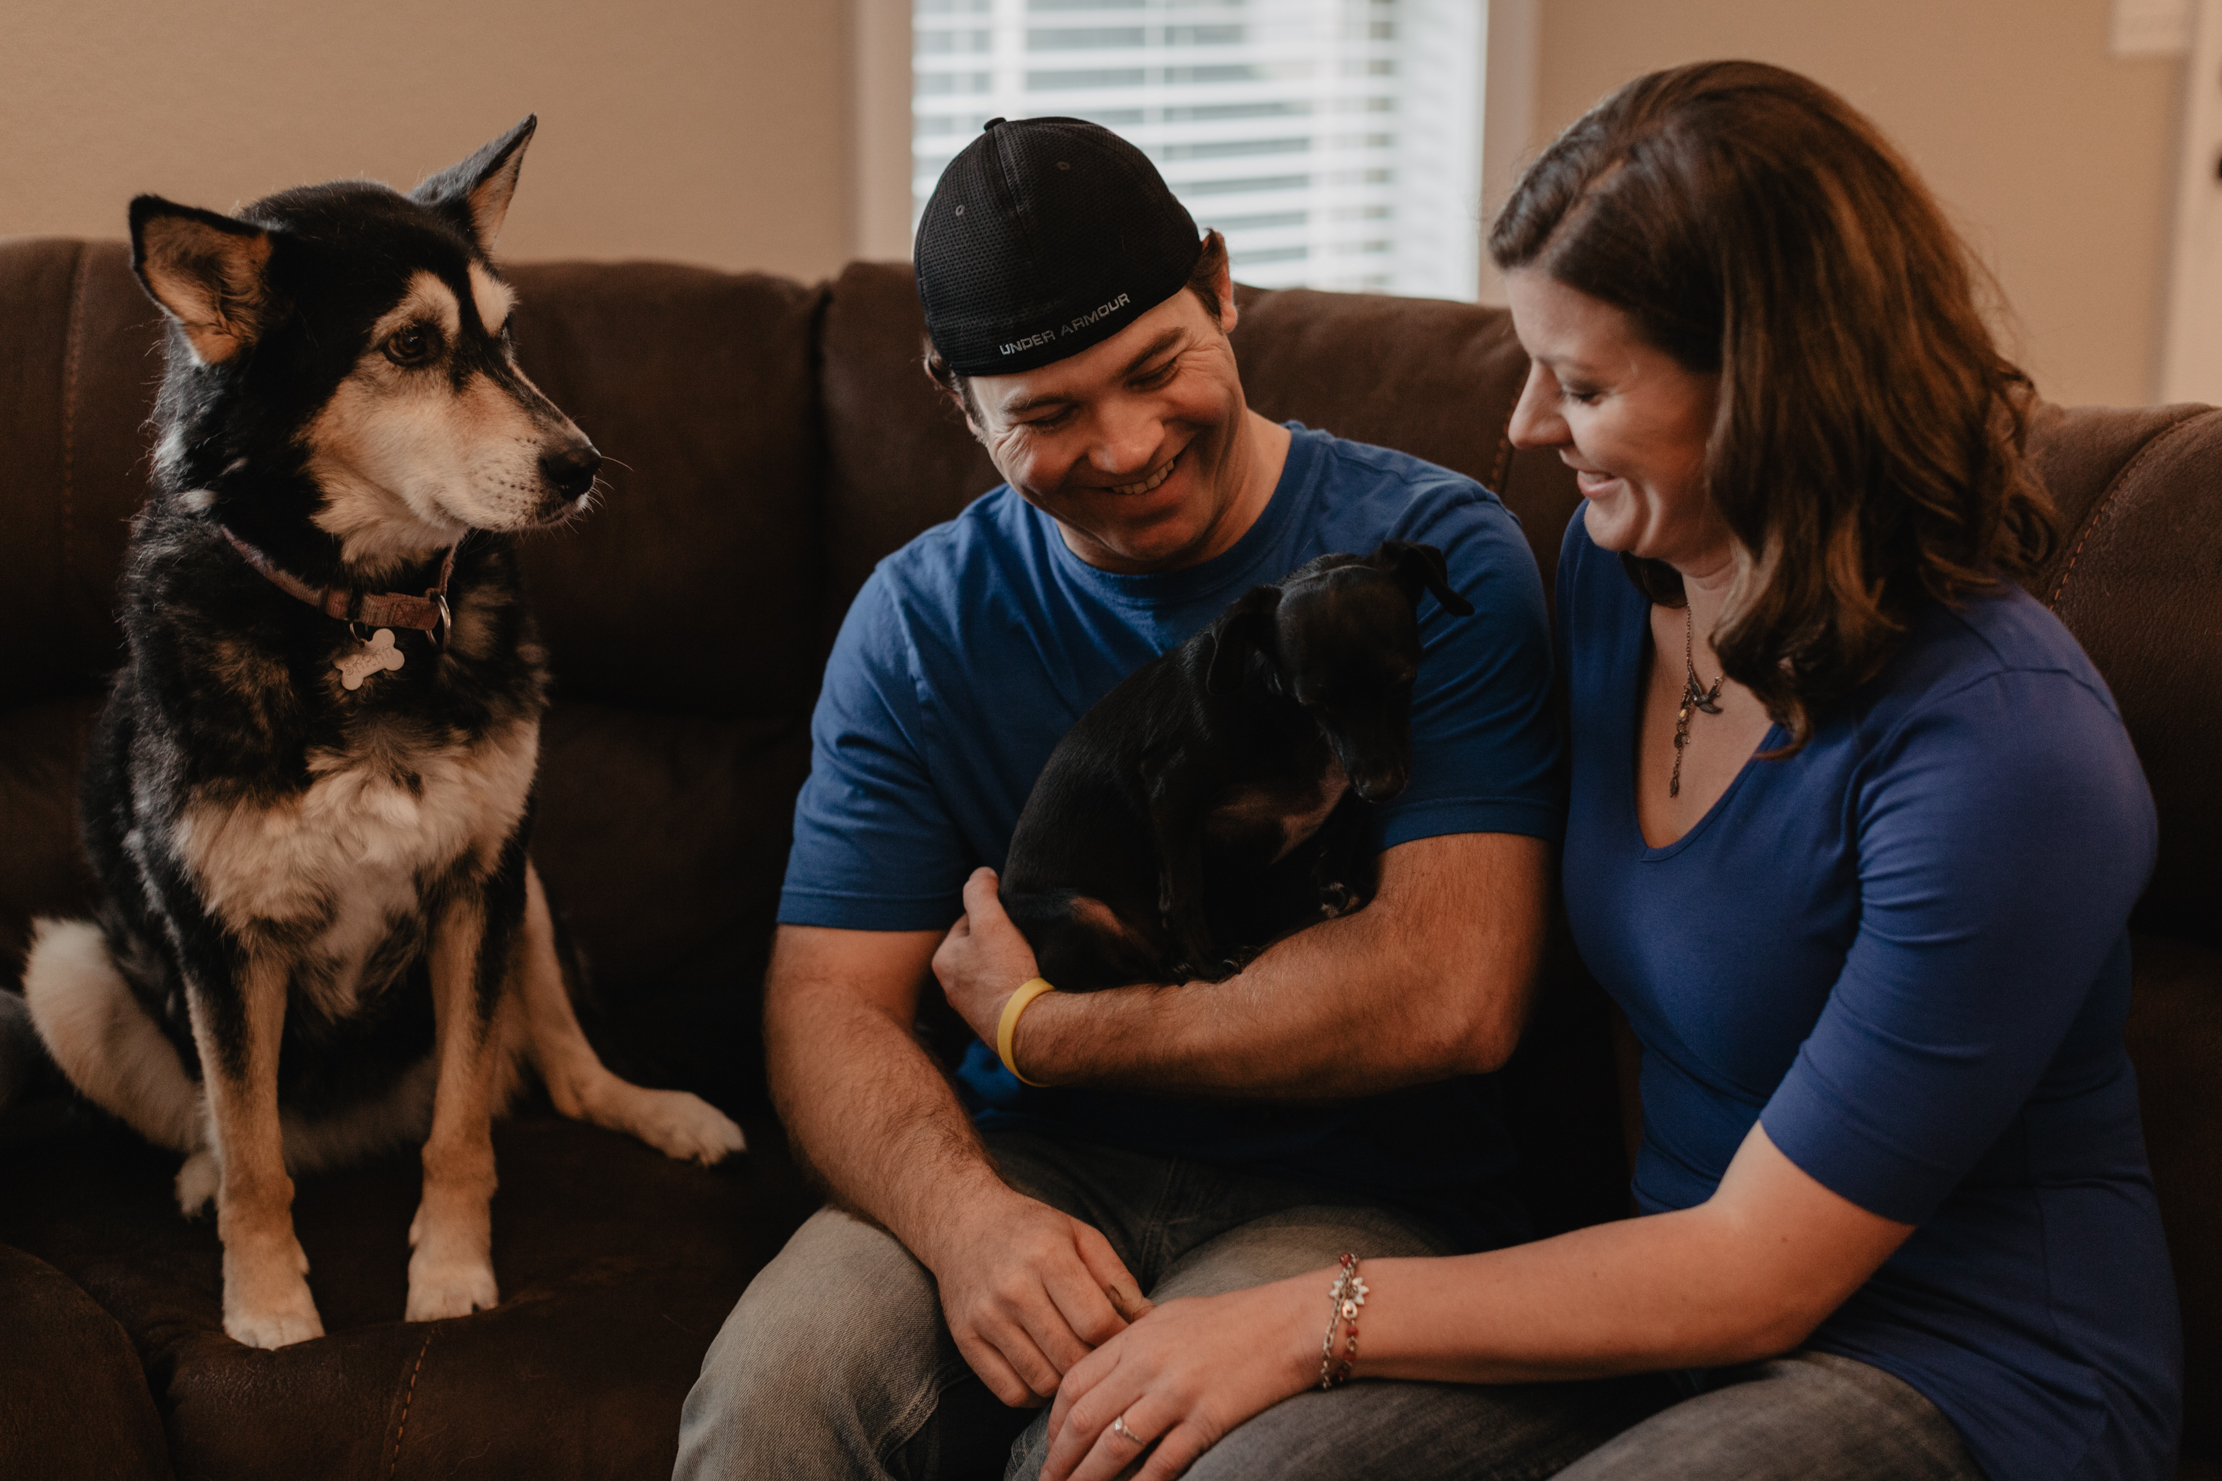 Lifestyle engagement photos at home | Knoxville wedding photogra